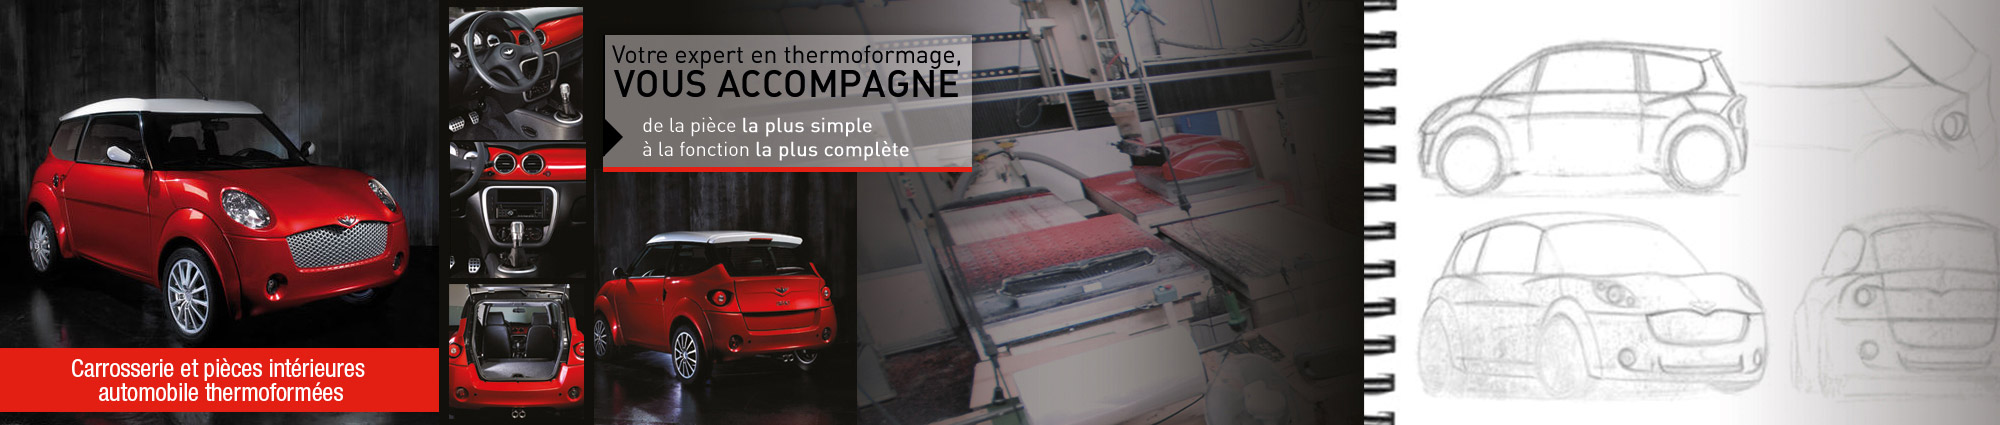 technoplast_industries_specialiste_thermoformage_chatenet